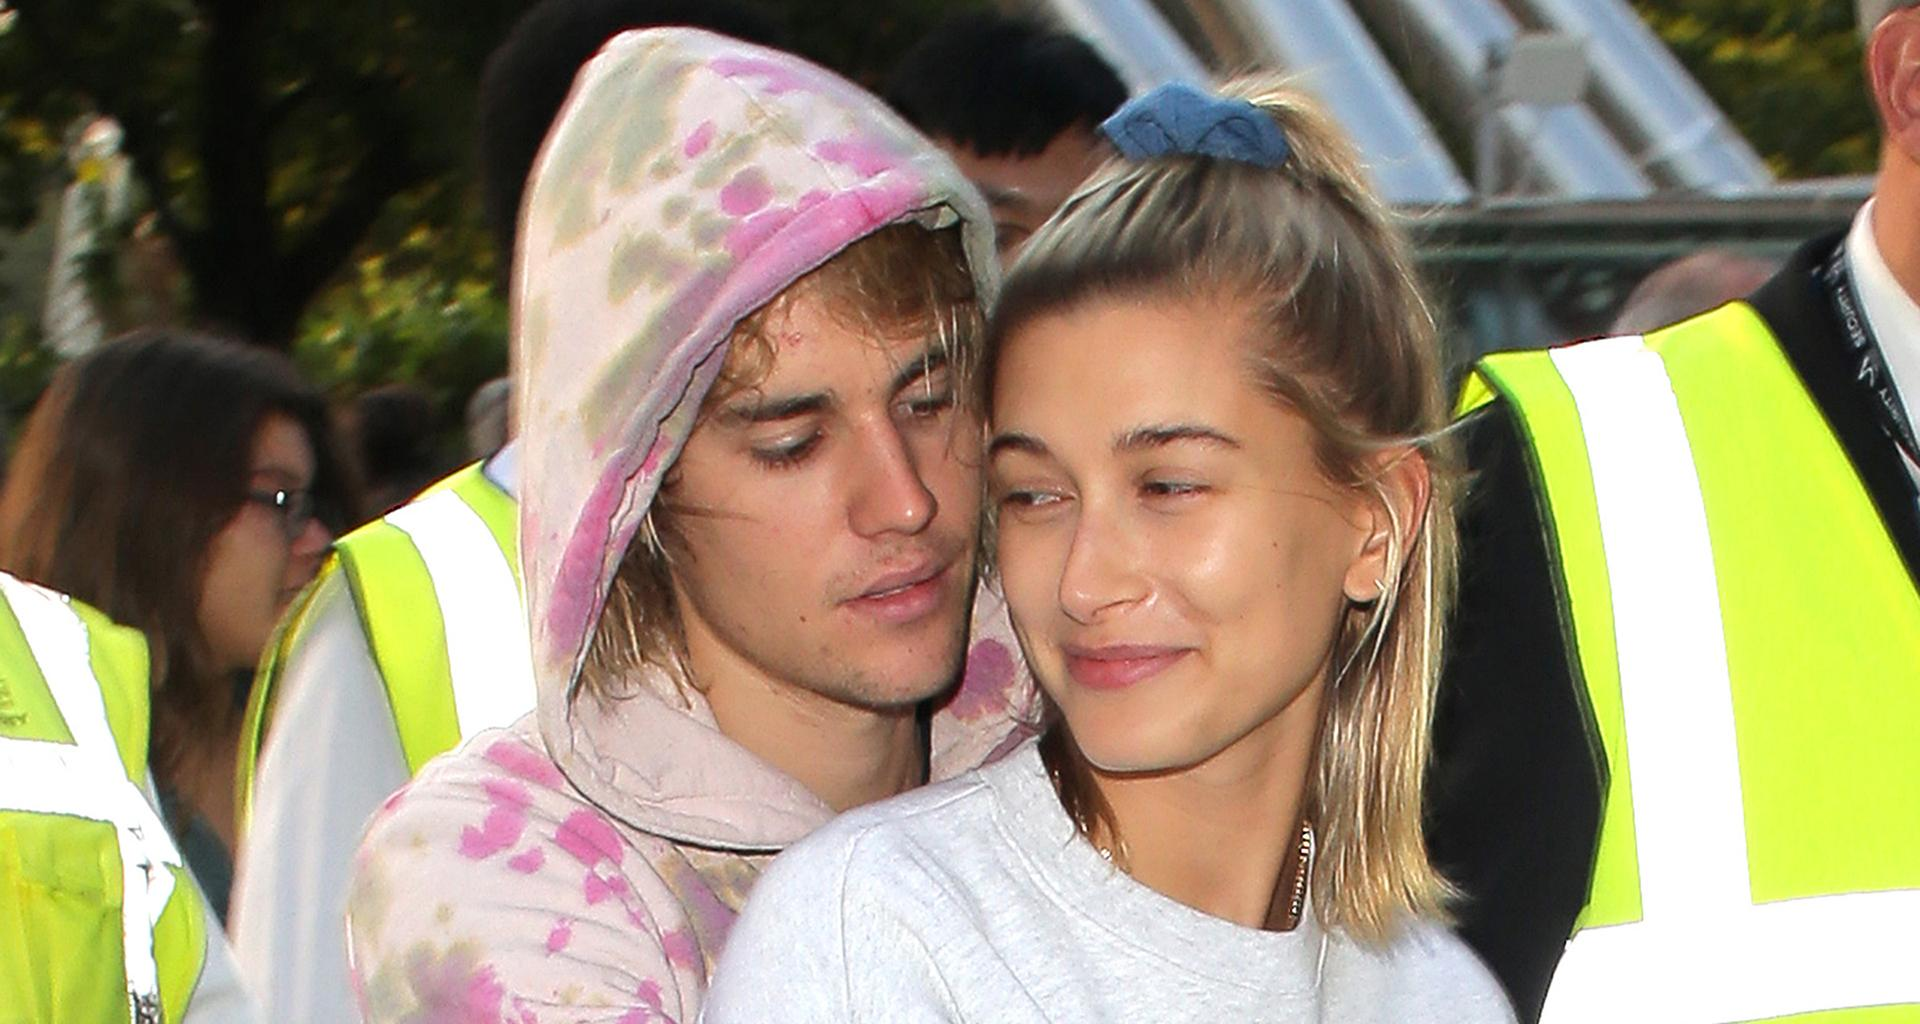 Justin Bieber Raves Over Hailey Baldwin In Romantic Post - 'I Fall More In Love With You Every Single Day'